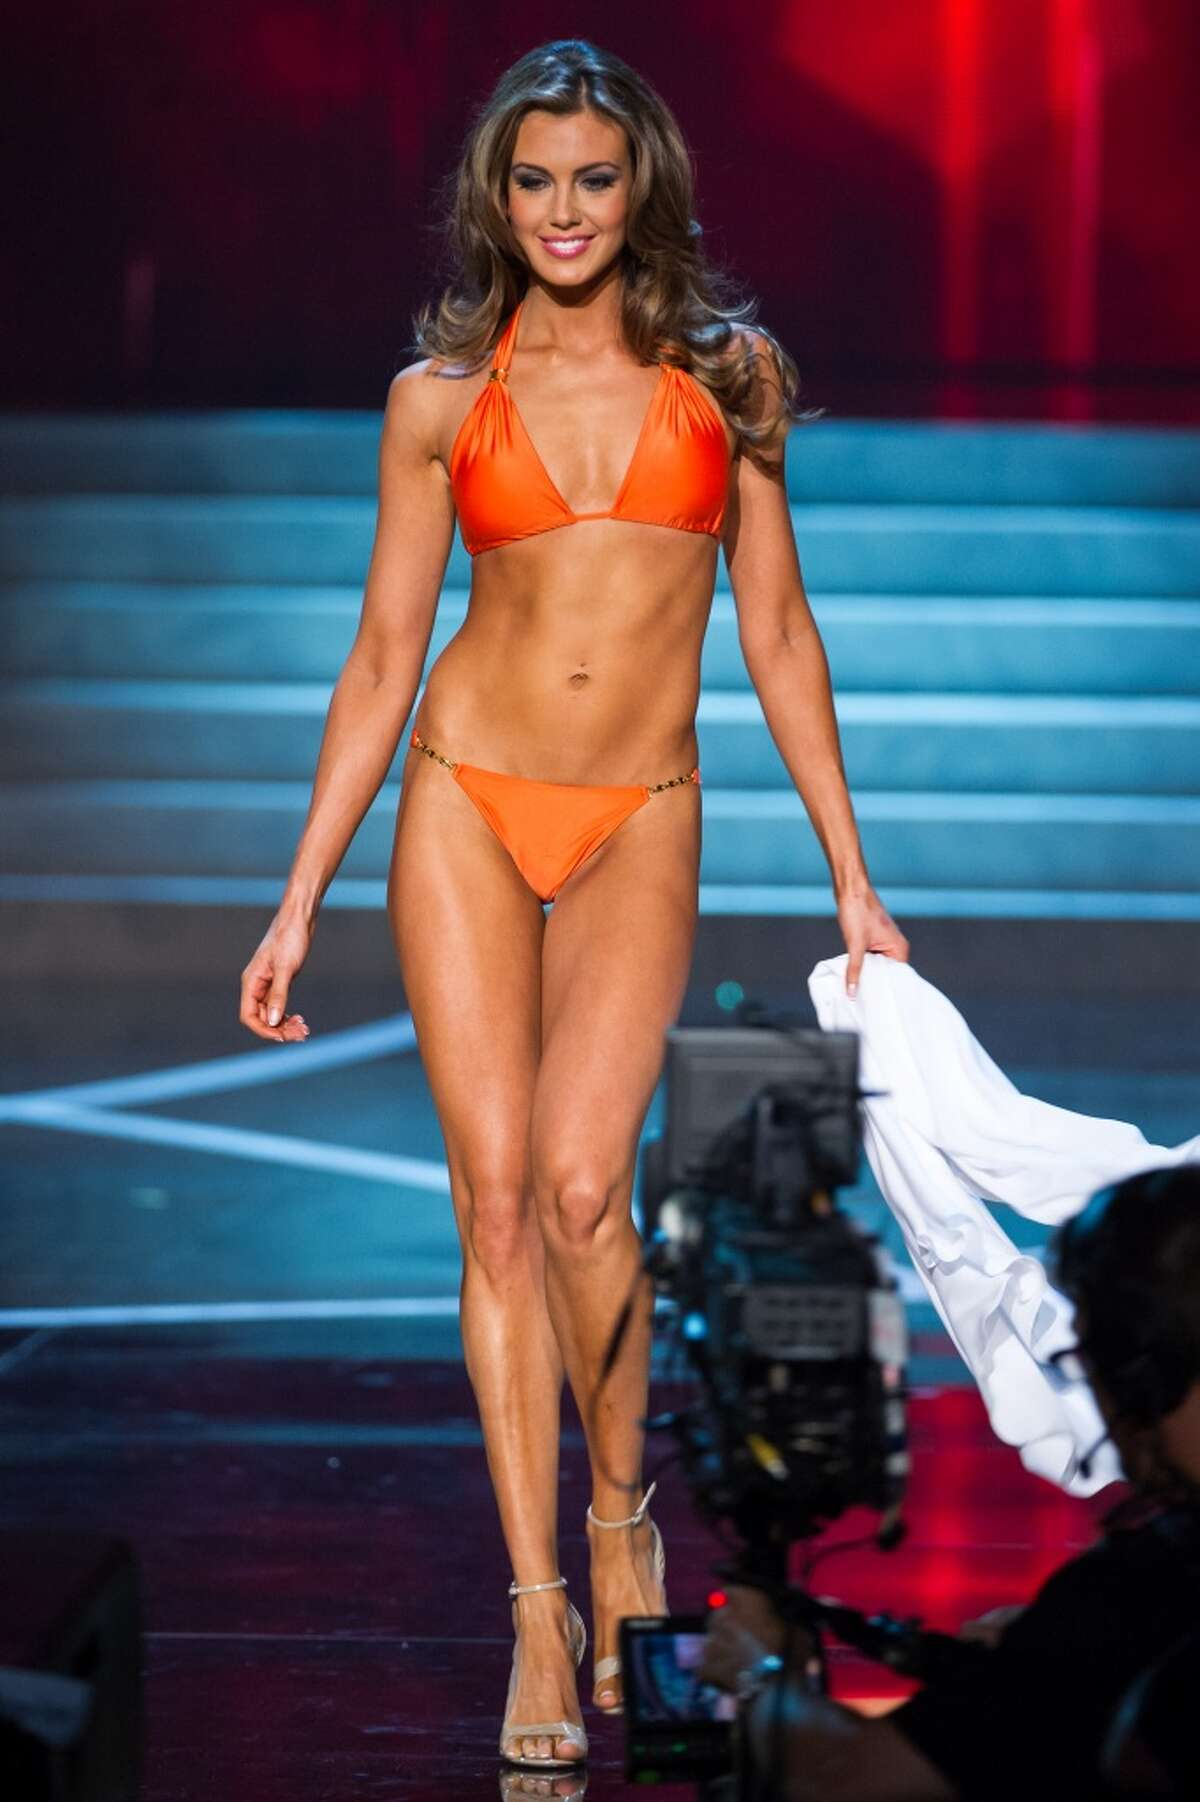 LAS VEGAS, NV - JUNE 16: Miss Connecticut USA 2013 Erin Brady competes during the 2013 Miss USA pageant at PH Live at Planet Hollywood Resort & Casino on June 16, 2013 in Las Vegas, Nevada. (Photo by Michael Stewart/WireImage)